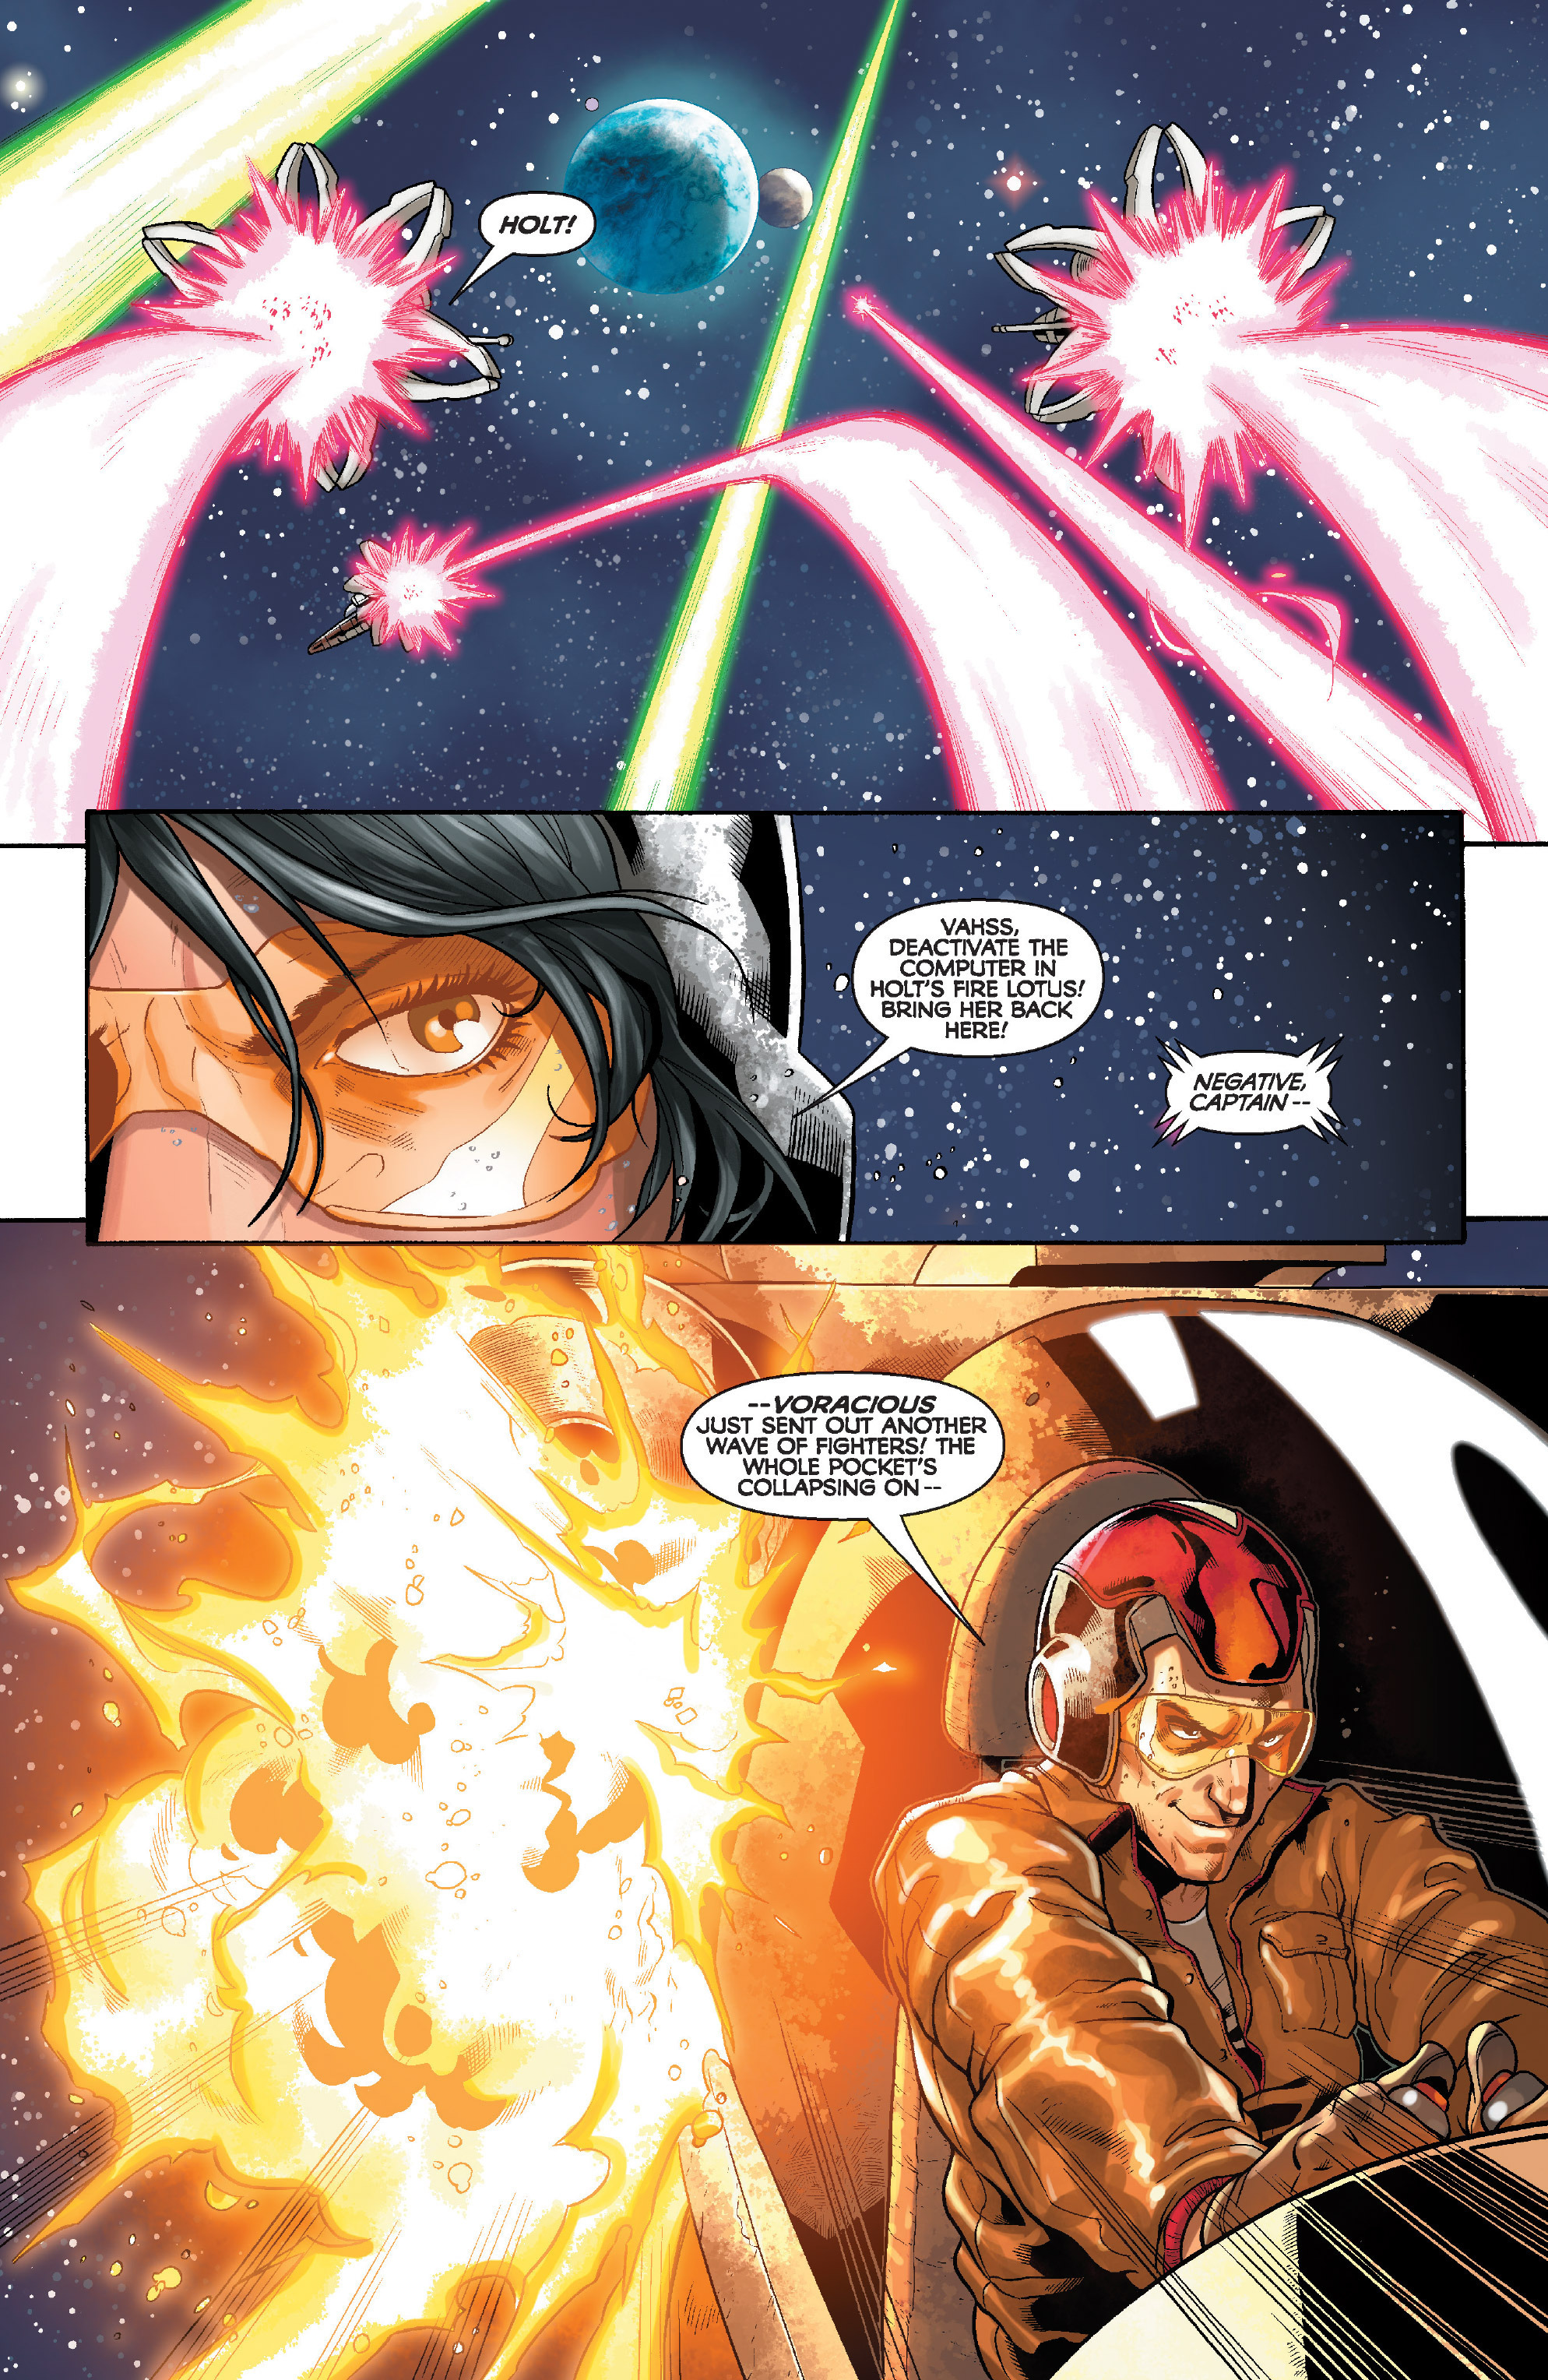 Read online Star Wars: Knight Errant - Deluge comic -  Issue #3 - 7